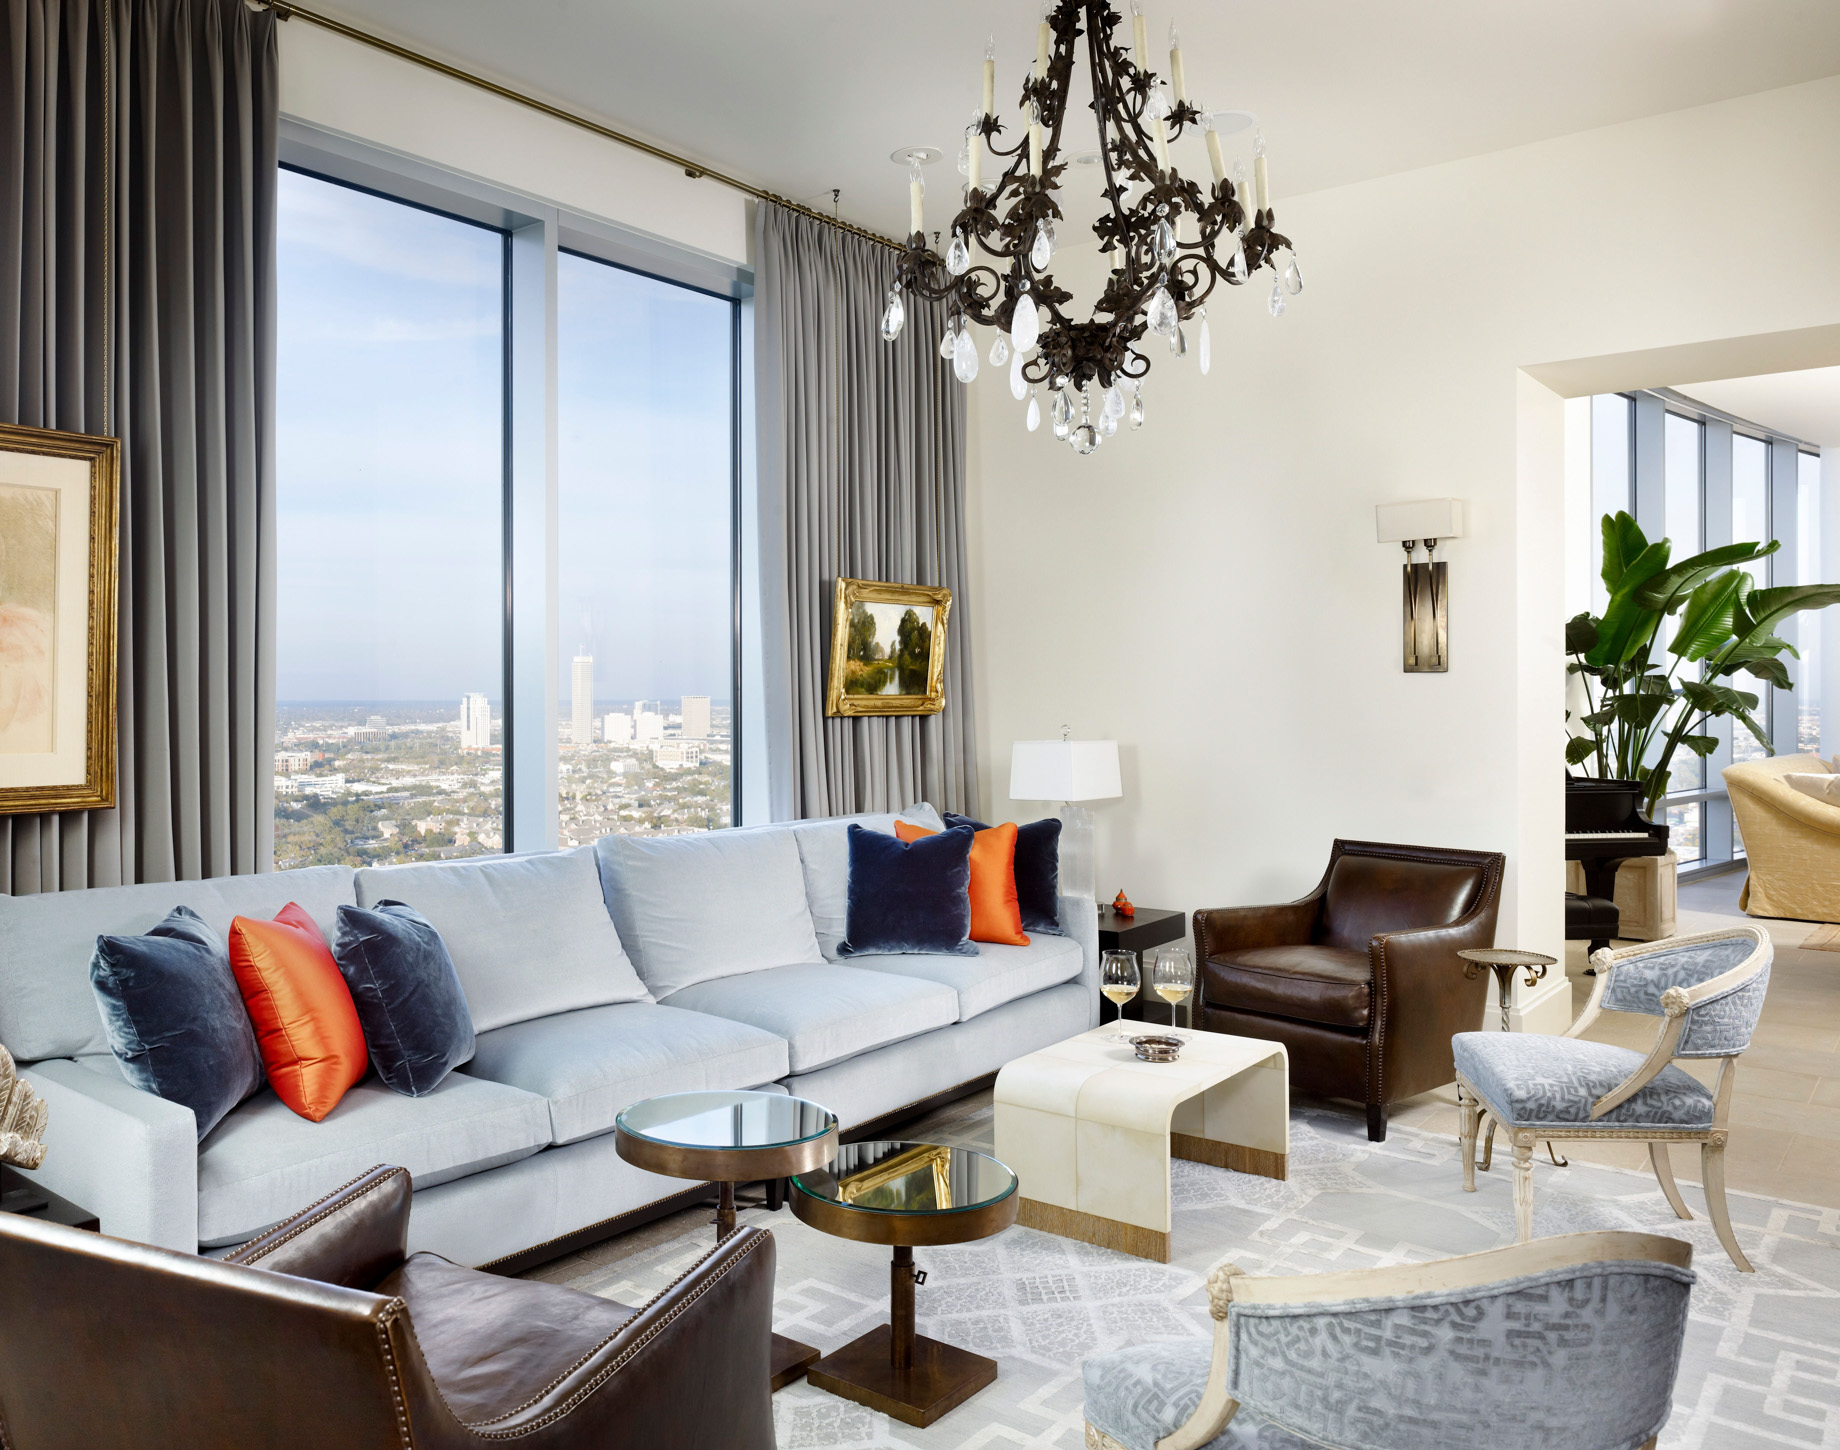 010 – Above and Beyond Interior Design Houston, TX, USA – Marcus Mohon